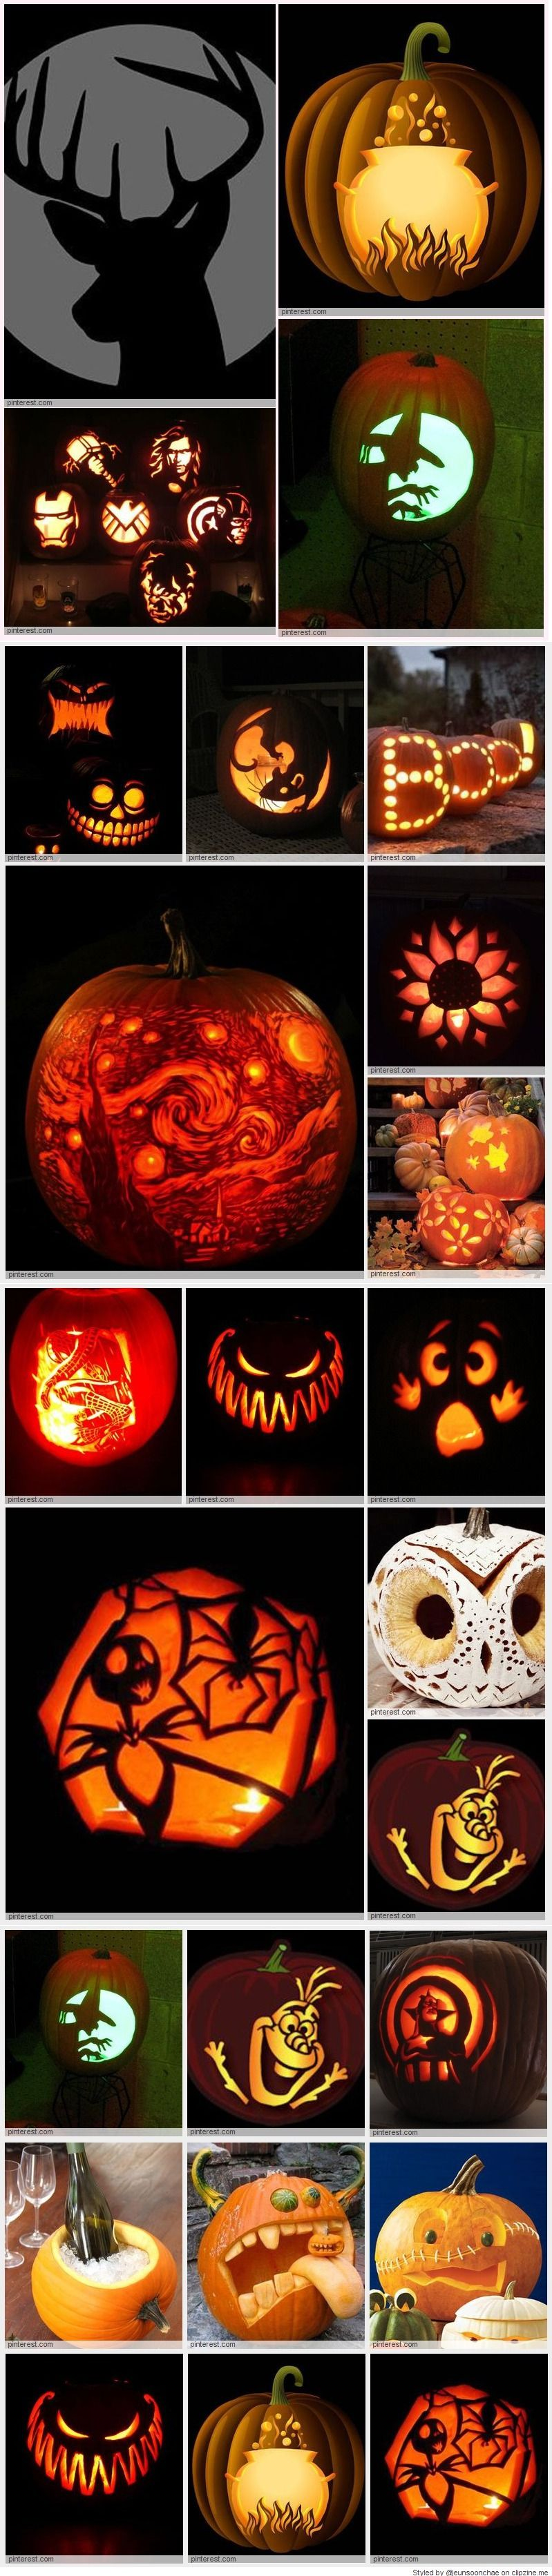 pumpkin carving patterns halloween pinterest halloween halloween k rbis und k rbisse. Black Bedroom Furniture Sets. Home Design Ideas